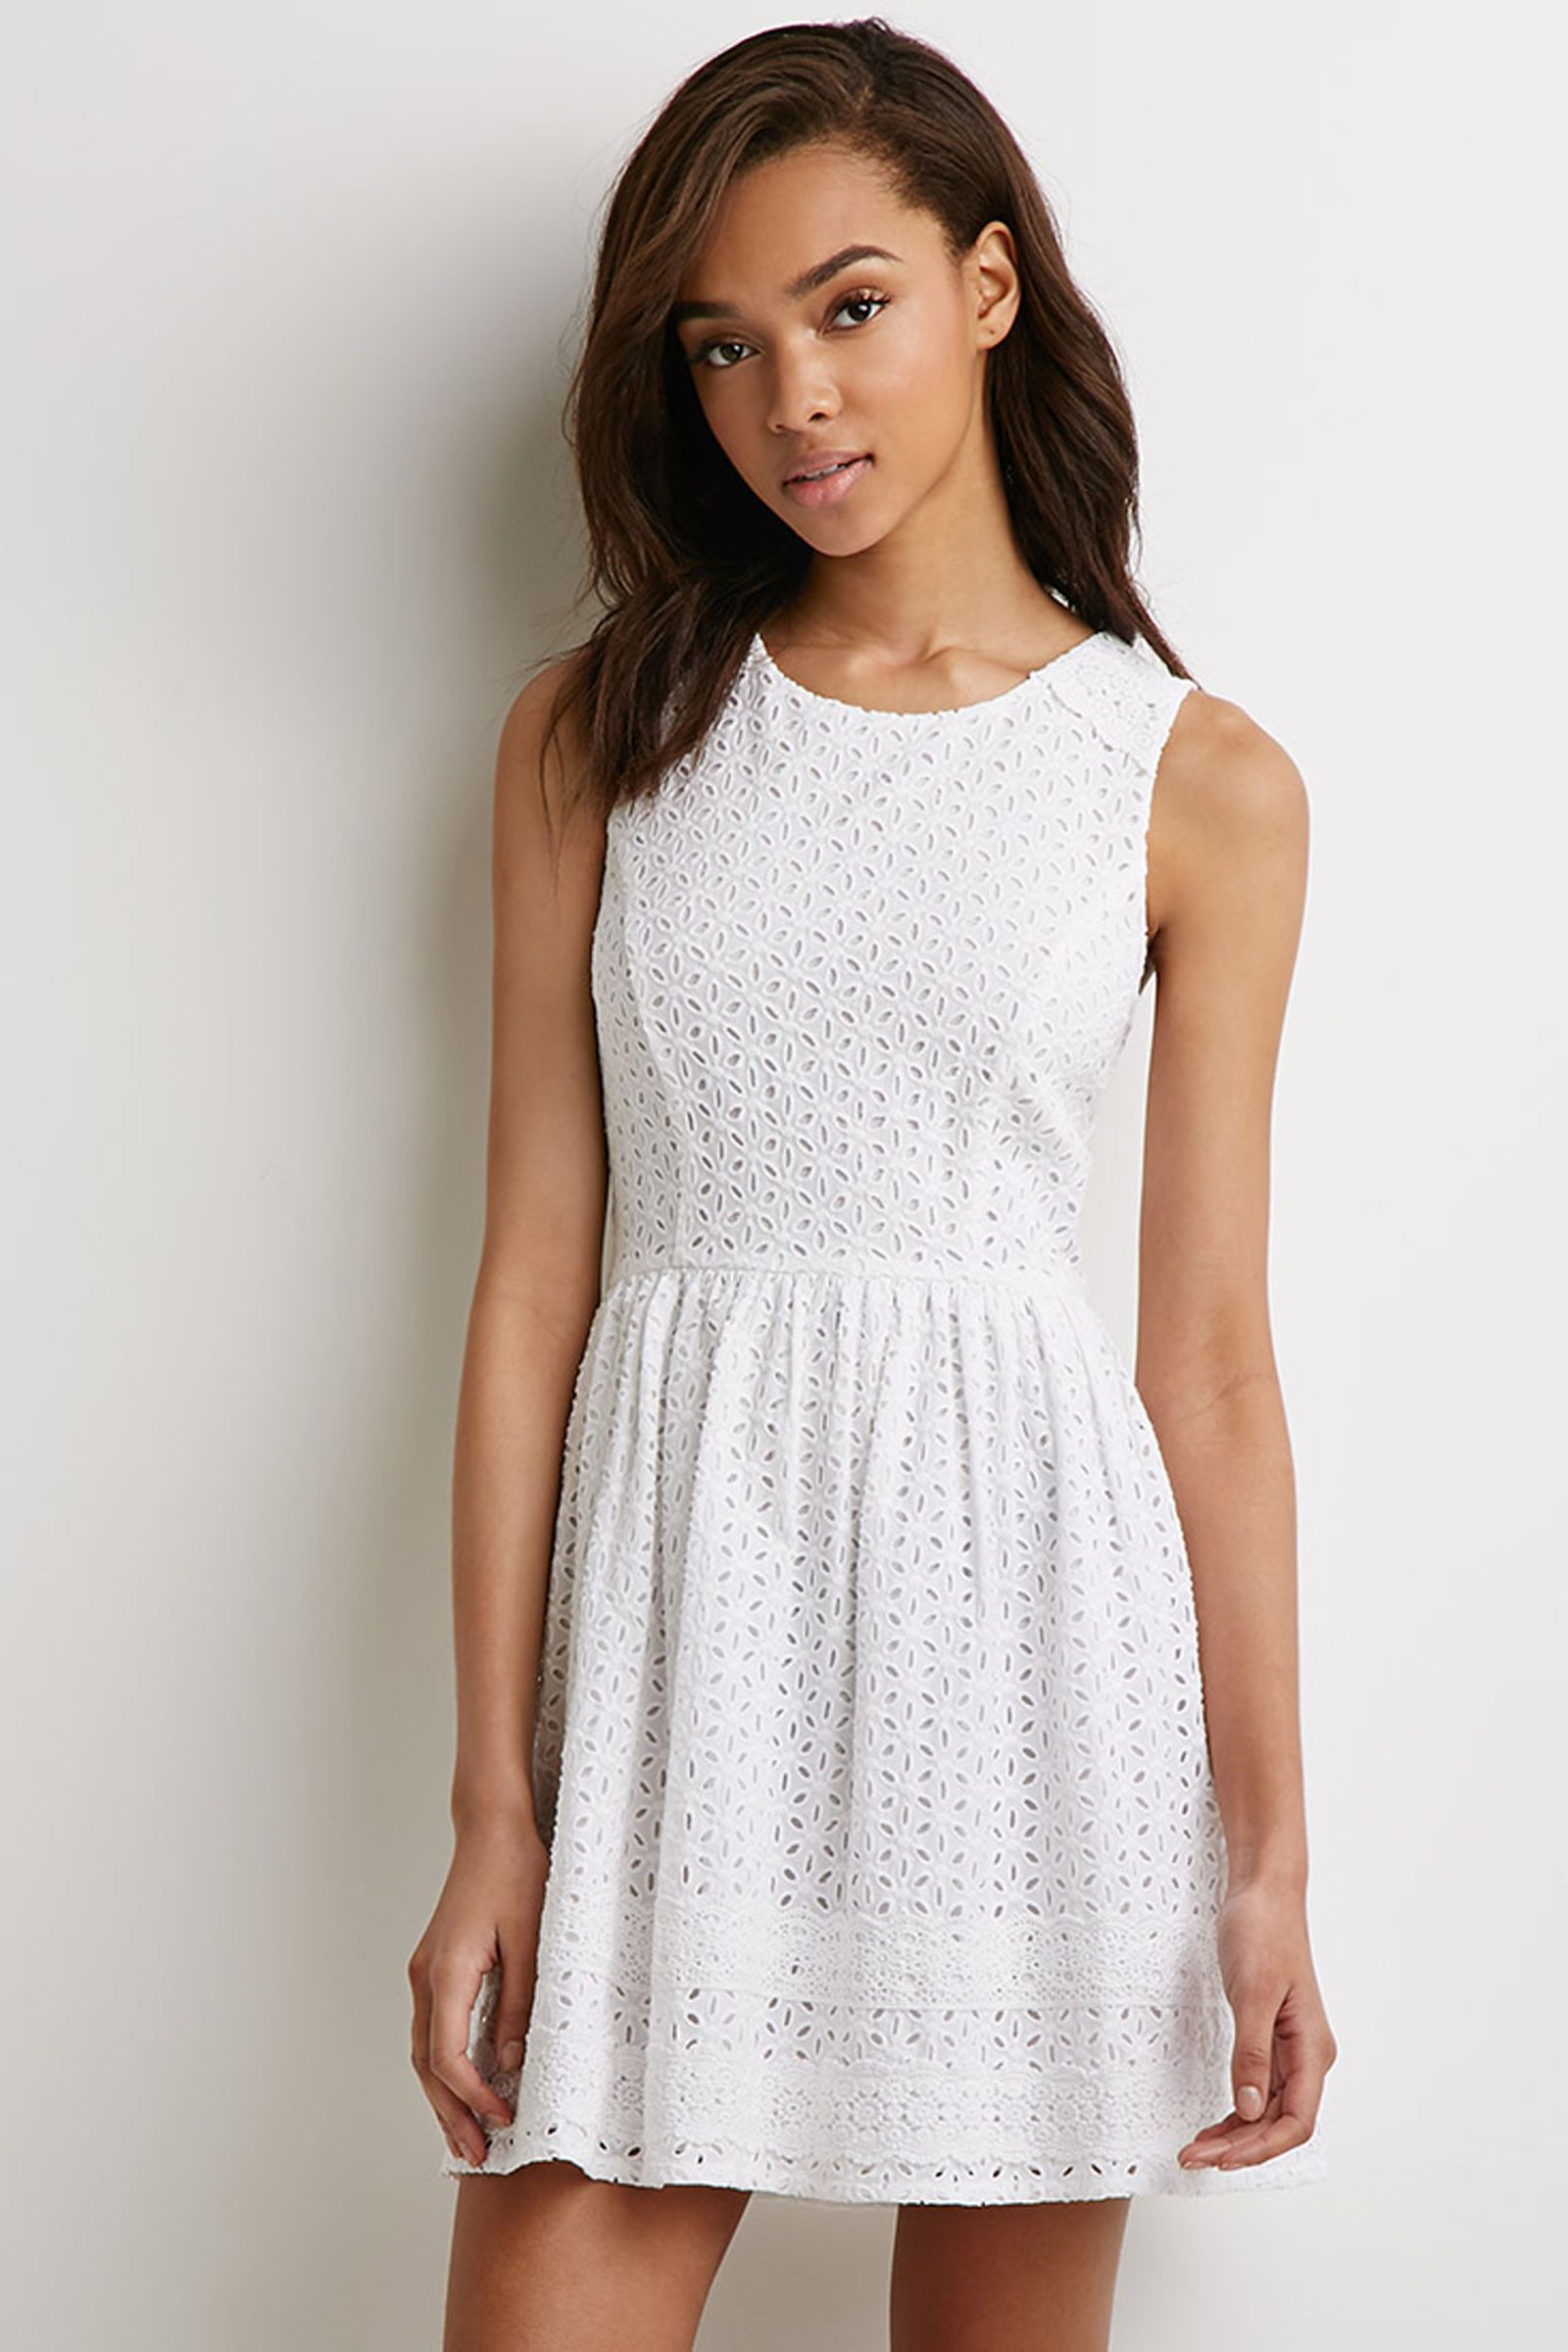 10 White Graduation Dresses Under 100 That Will Make You